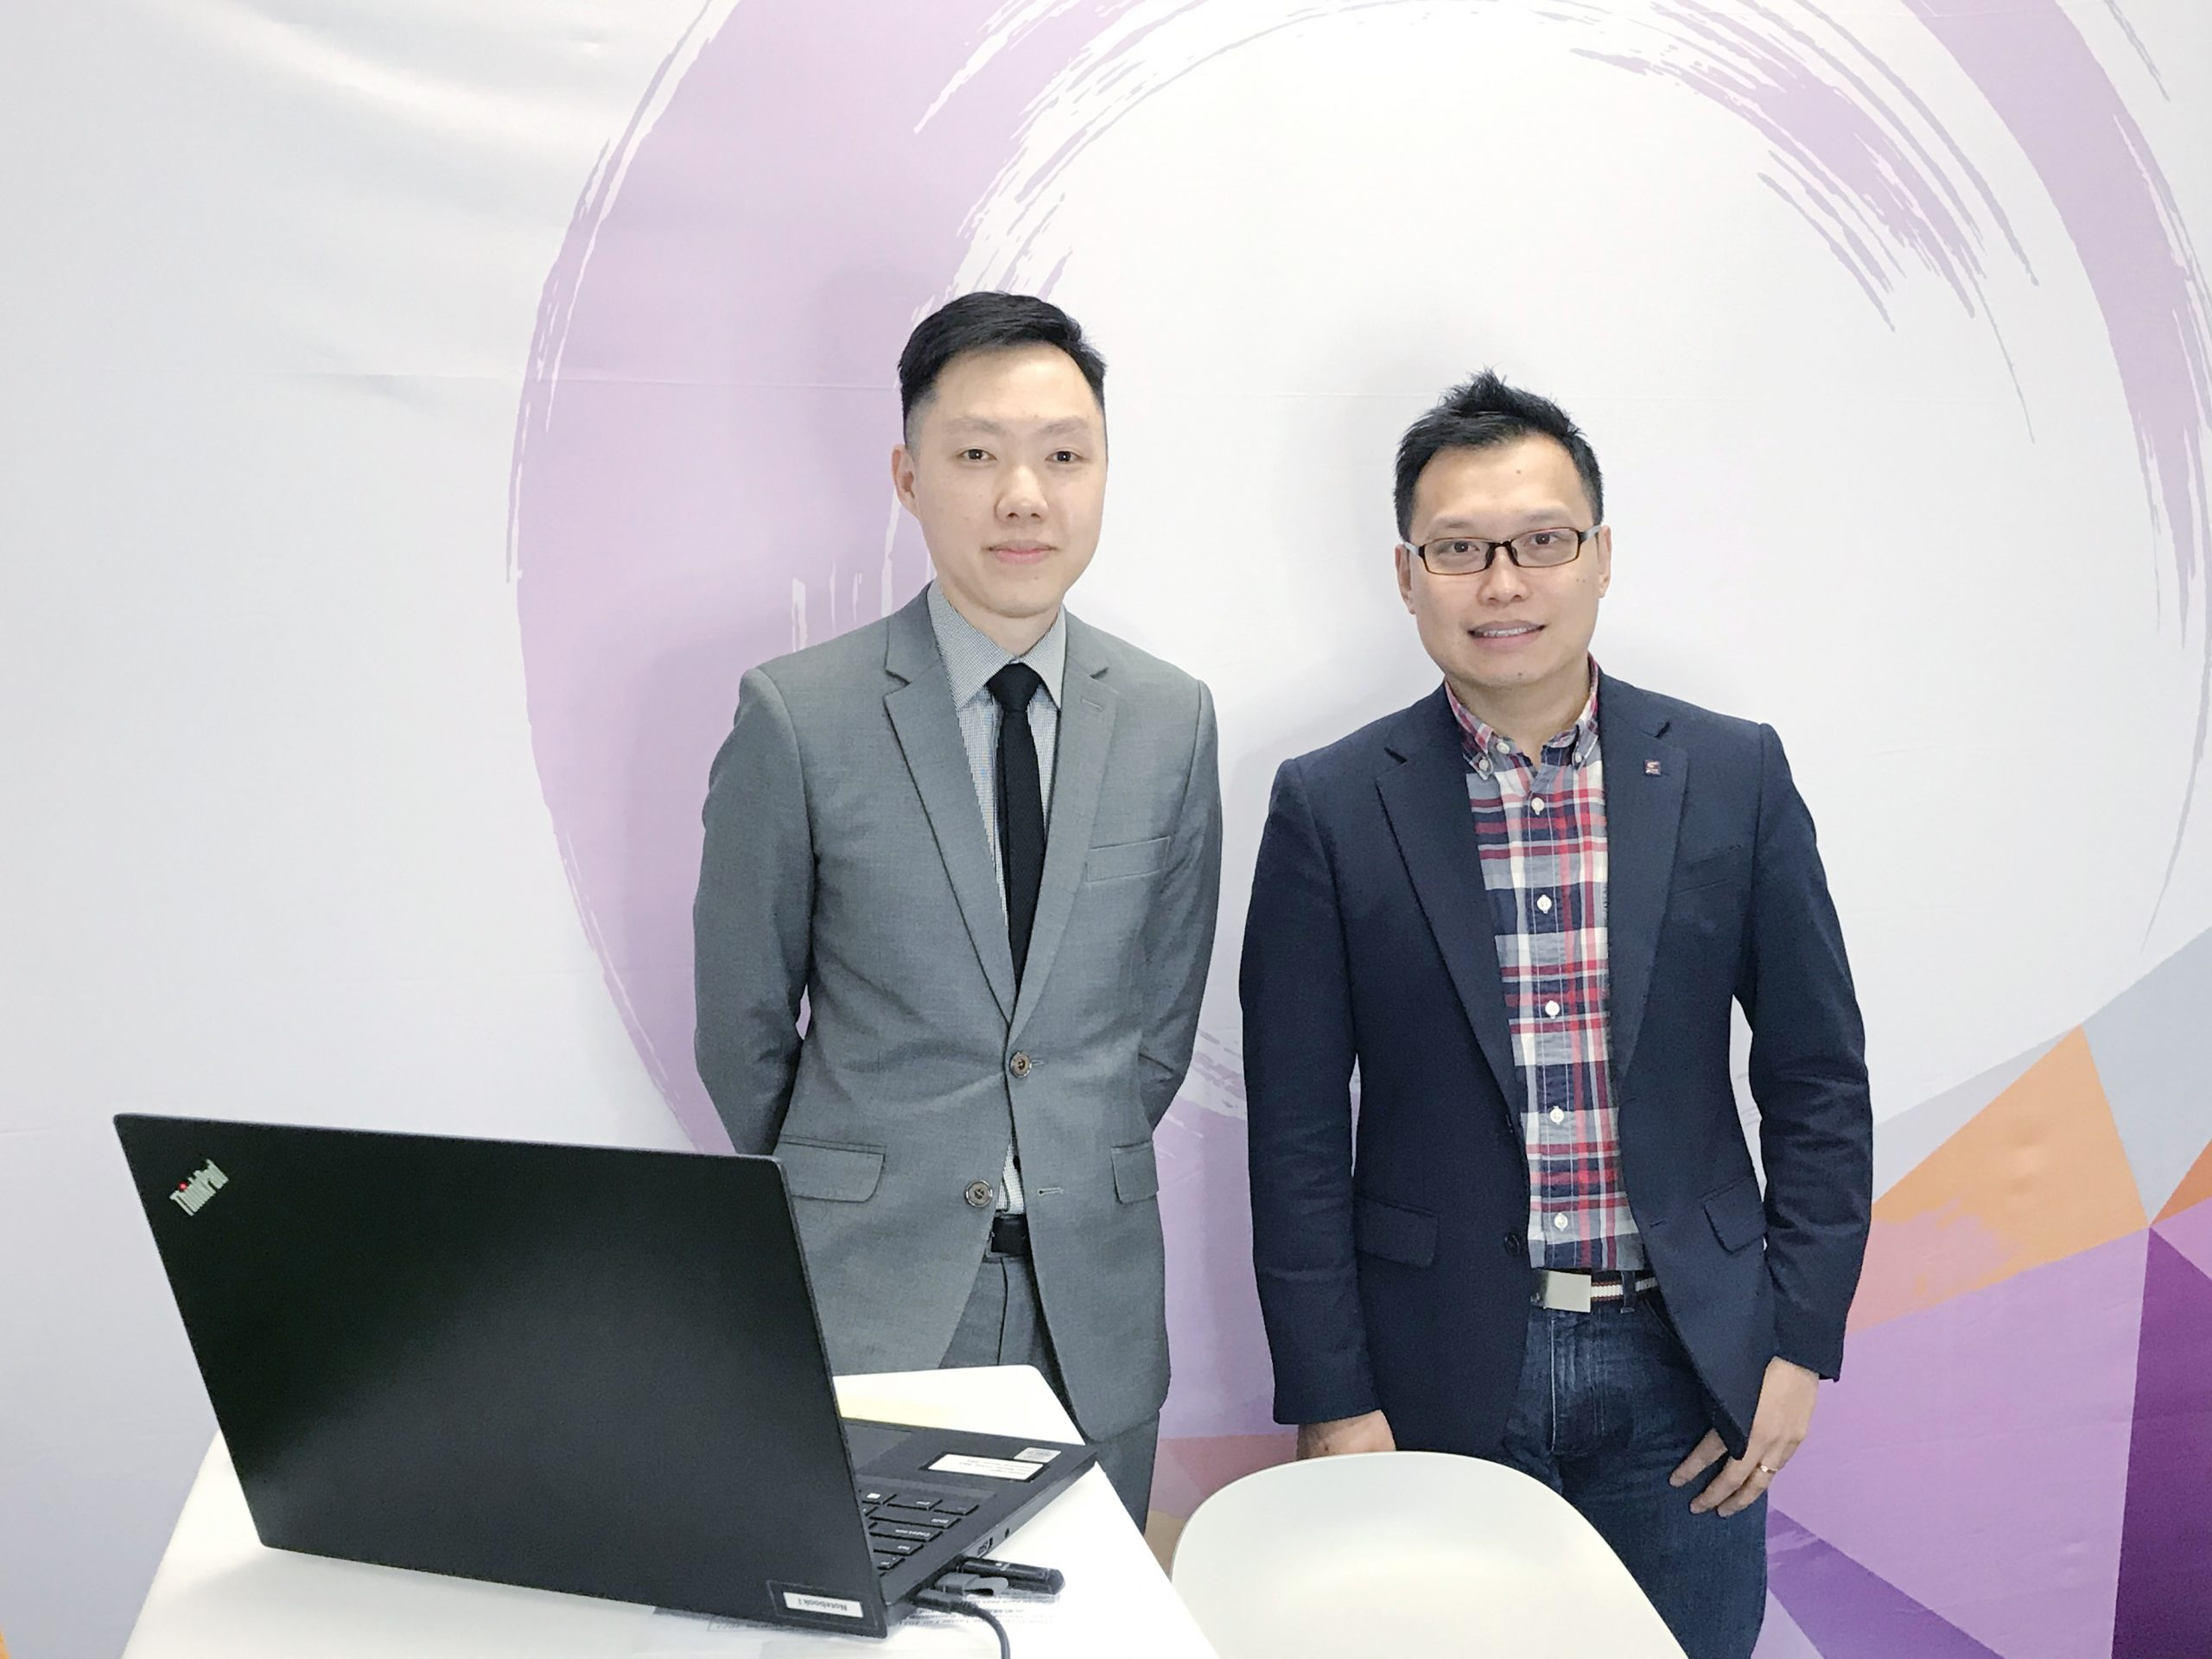 Dr. Fred Ku (Assistant Dean, Undergraduate Studies)(right) and Dr. Anson Au Yeung (Programme Co-Director, Asian Business Studies) (left) offered a warm welcome to the online audience before the talk began.